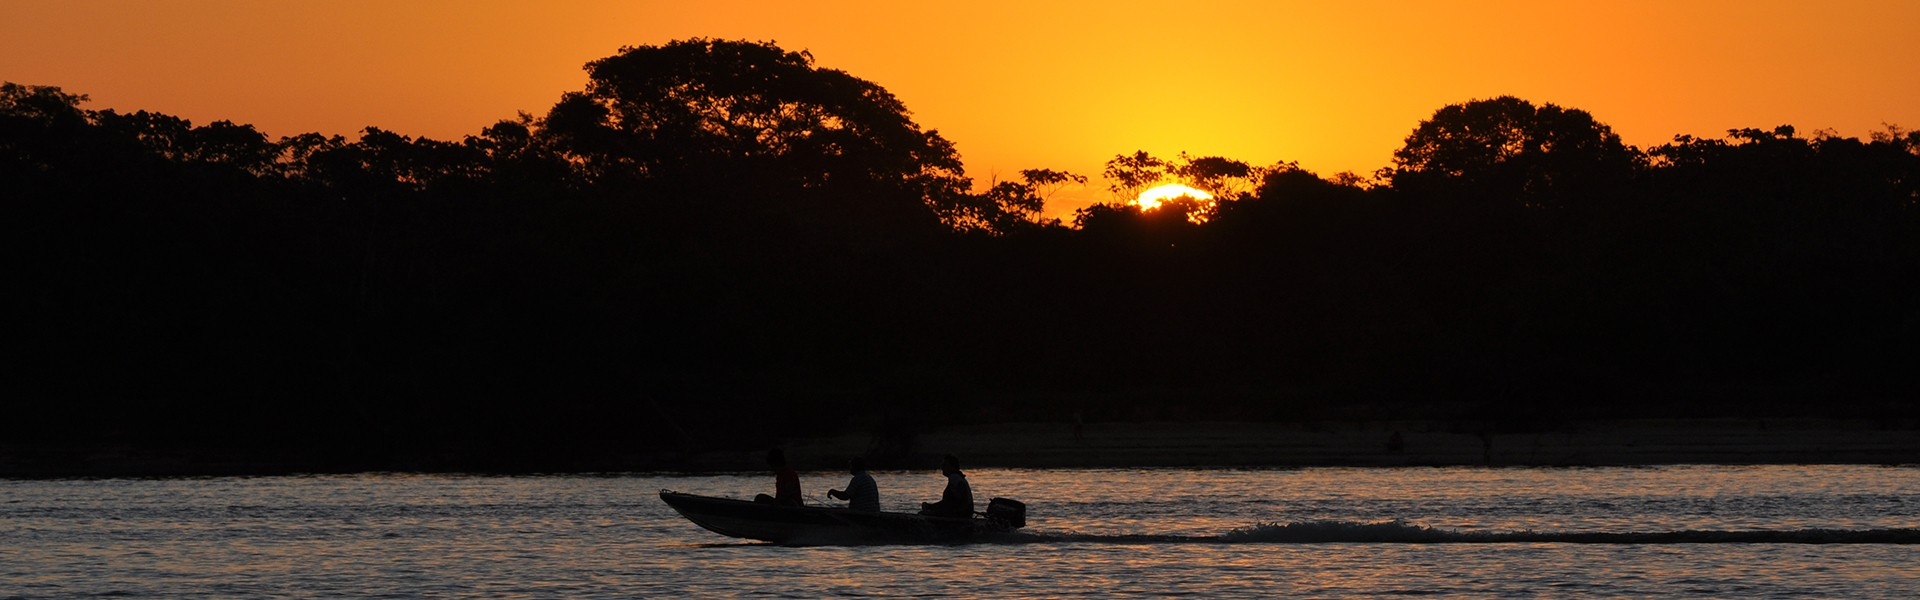 Governo do Tocantins realiza workshop voltado ao turismo e pesca esportiva